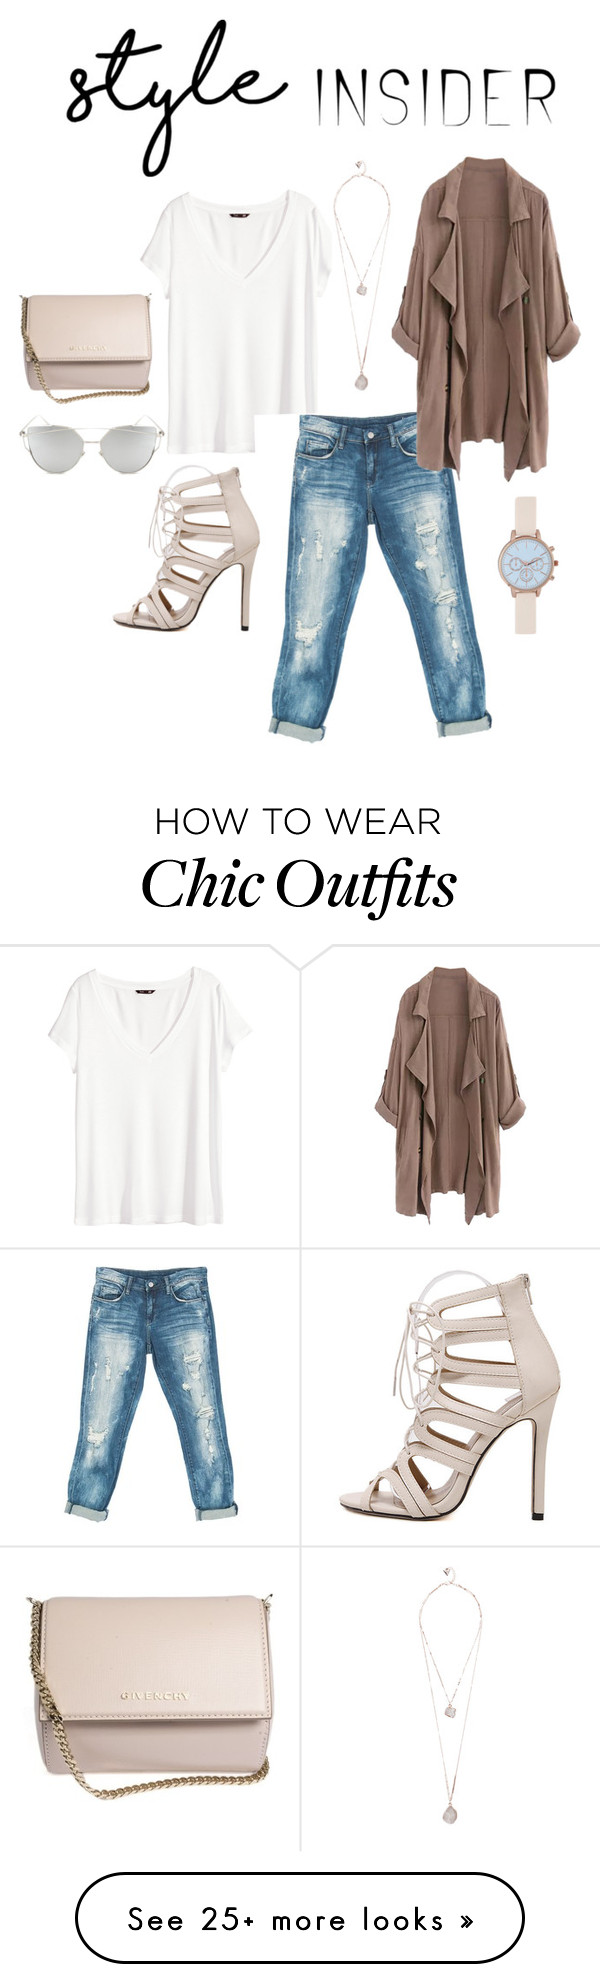 """""""chic chick"""" by kamille-ldr on Polyvore featuring H&M, Sans Souci, Givenchy, Chicnova Fashion, New Look, GUESS, contestentry, laceupsandals and PVStyleInsiderContest"""